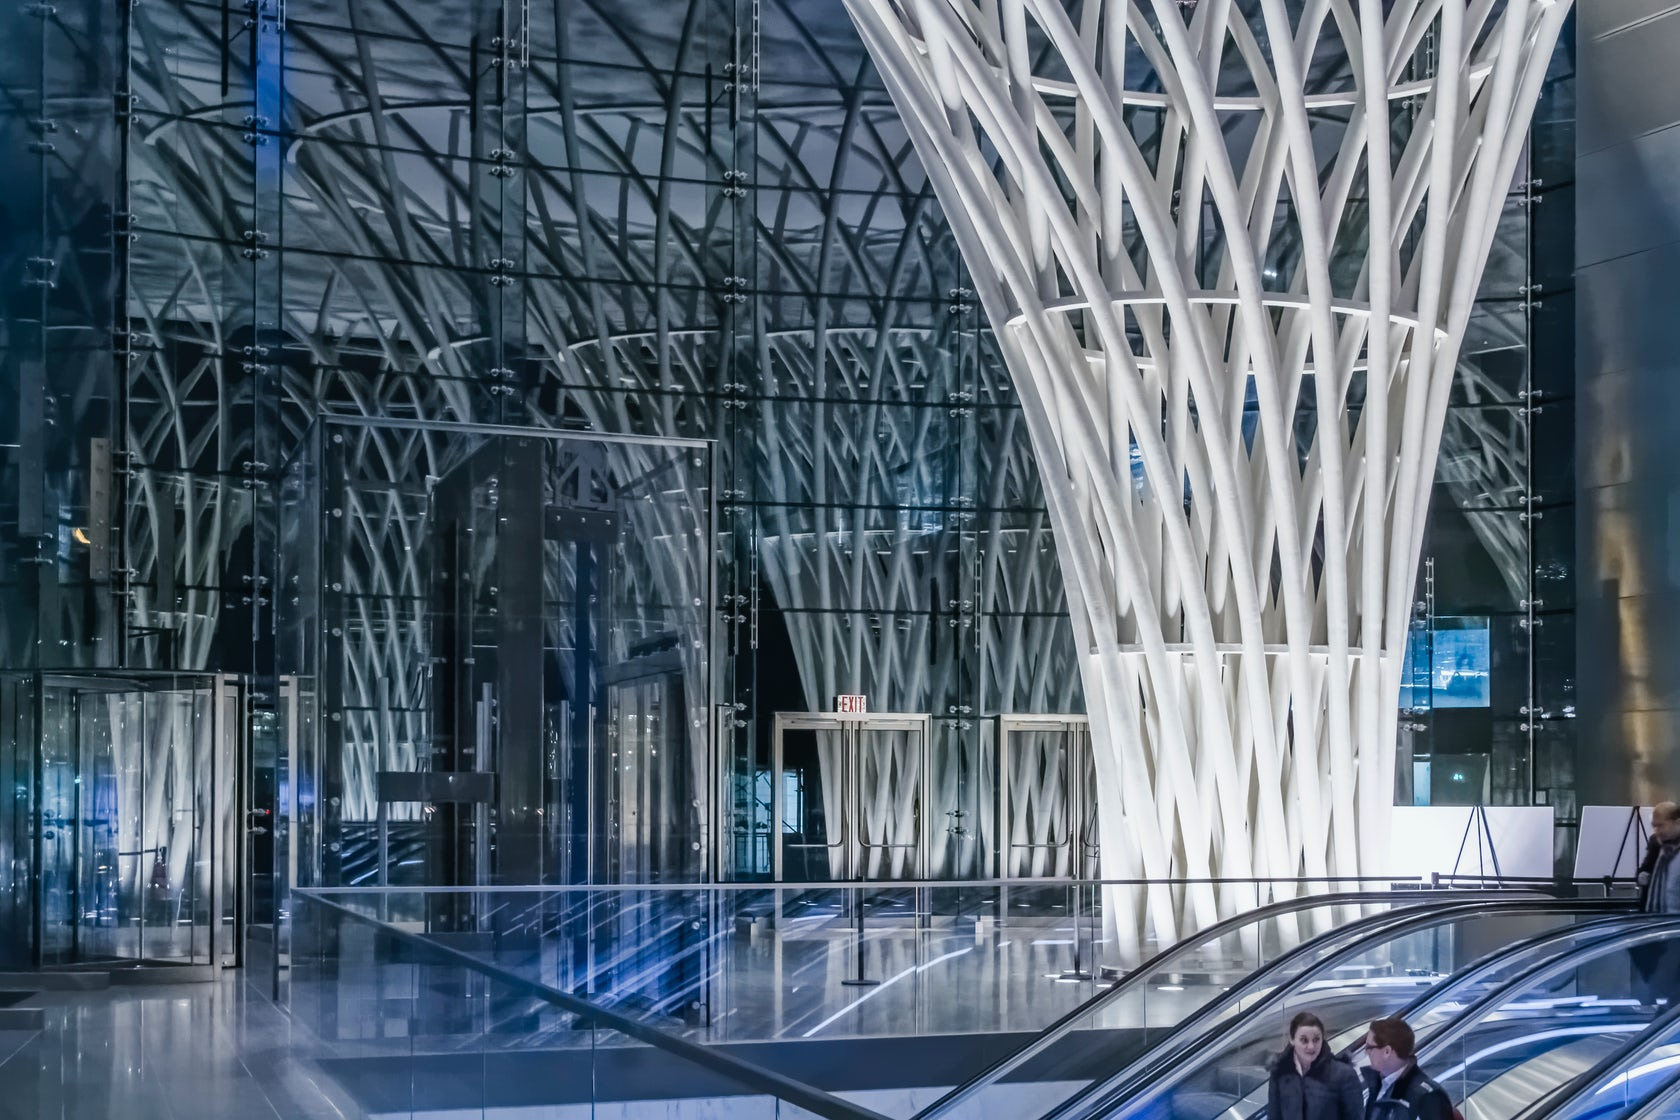 The pavilion at brookfield place architizer for 731 lexington ave new york ny 10022